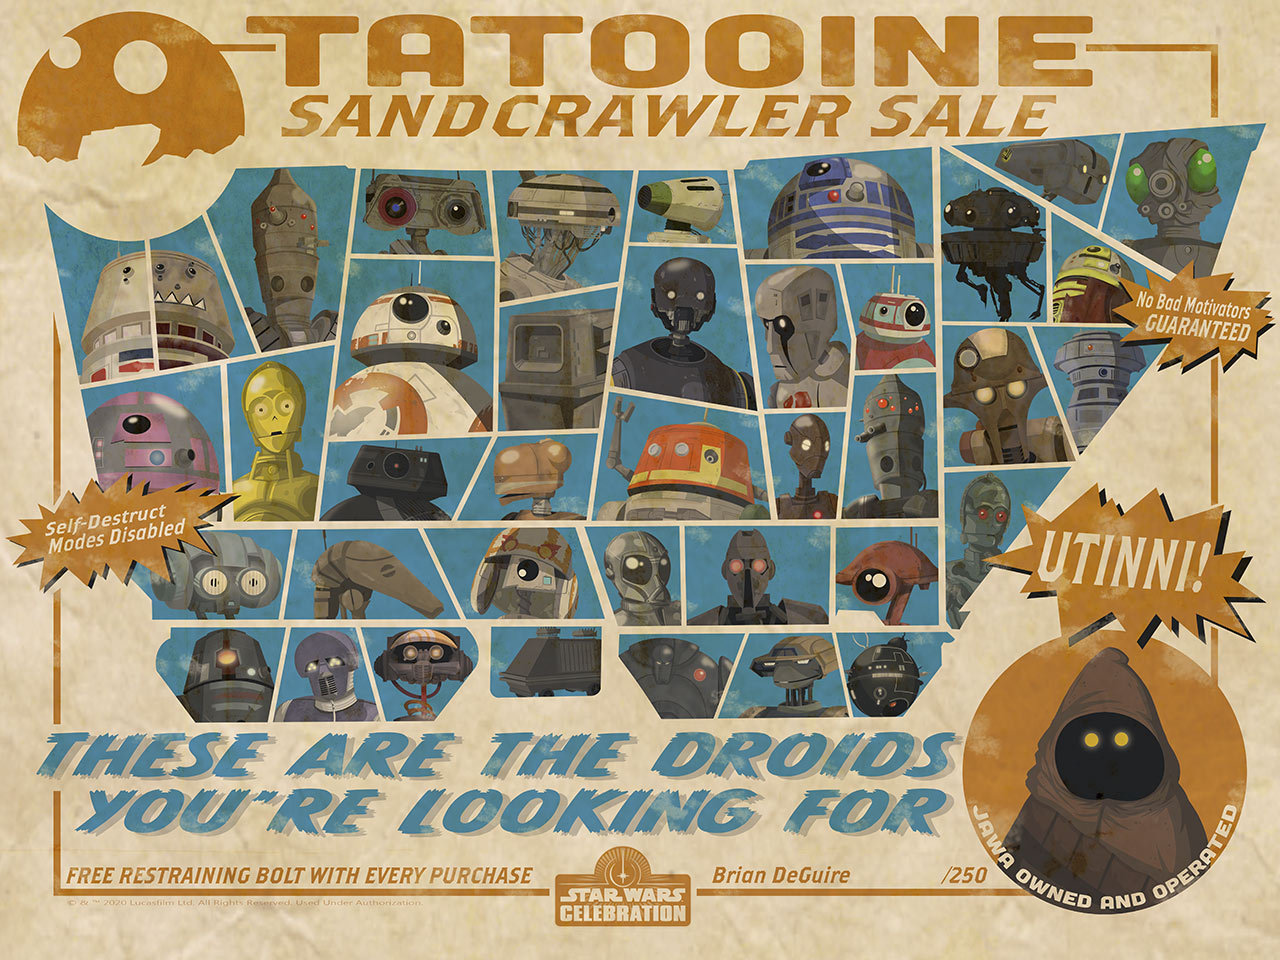 Star Wars Celebration 2020 Art Show: Tatooine Sandcrawler Sale